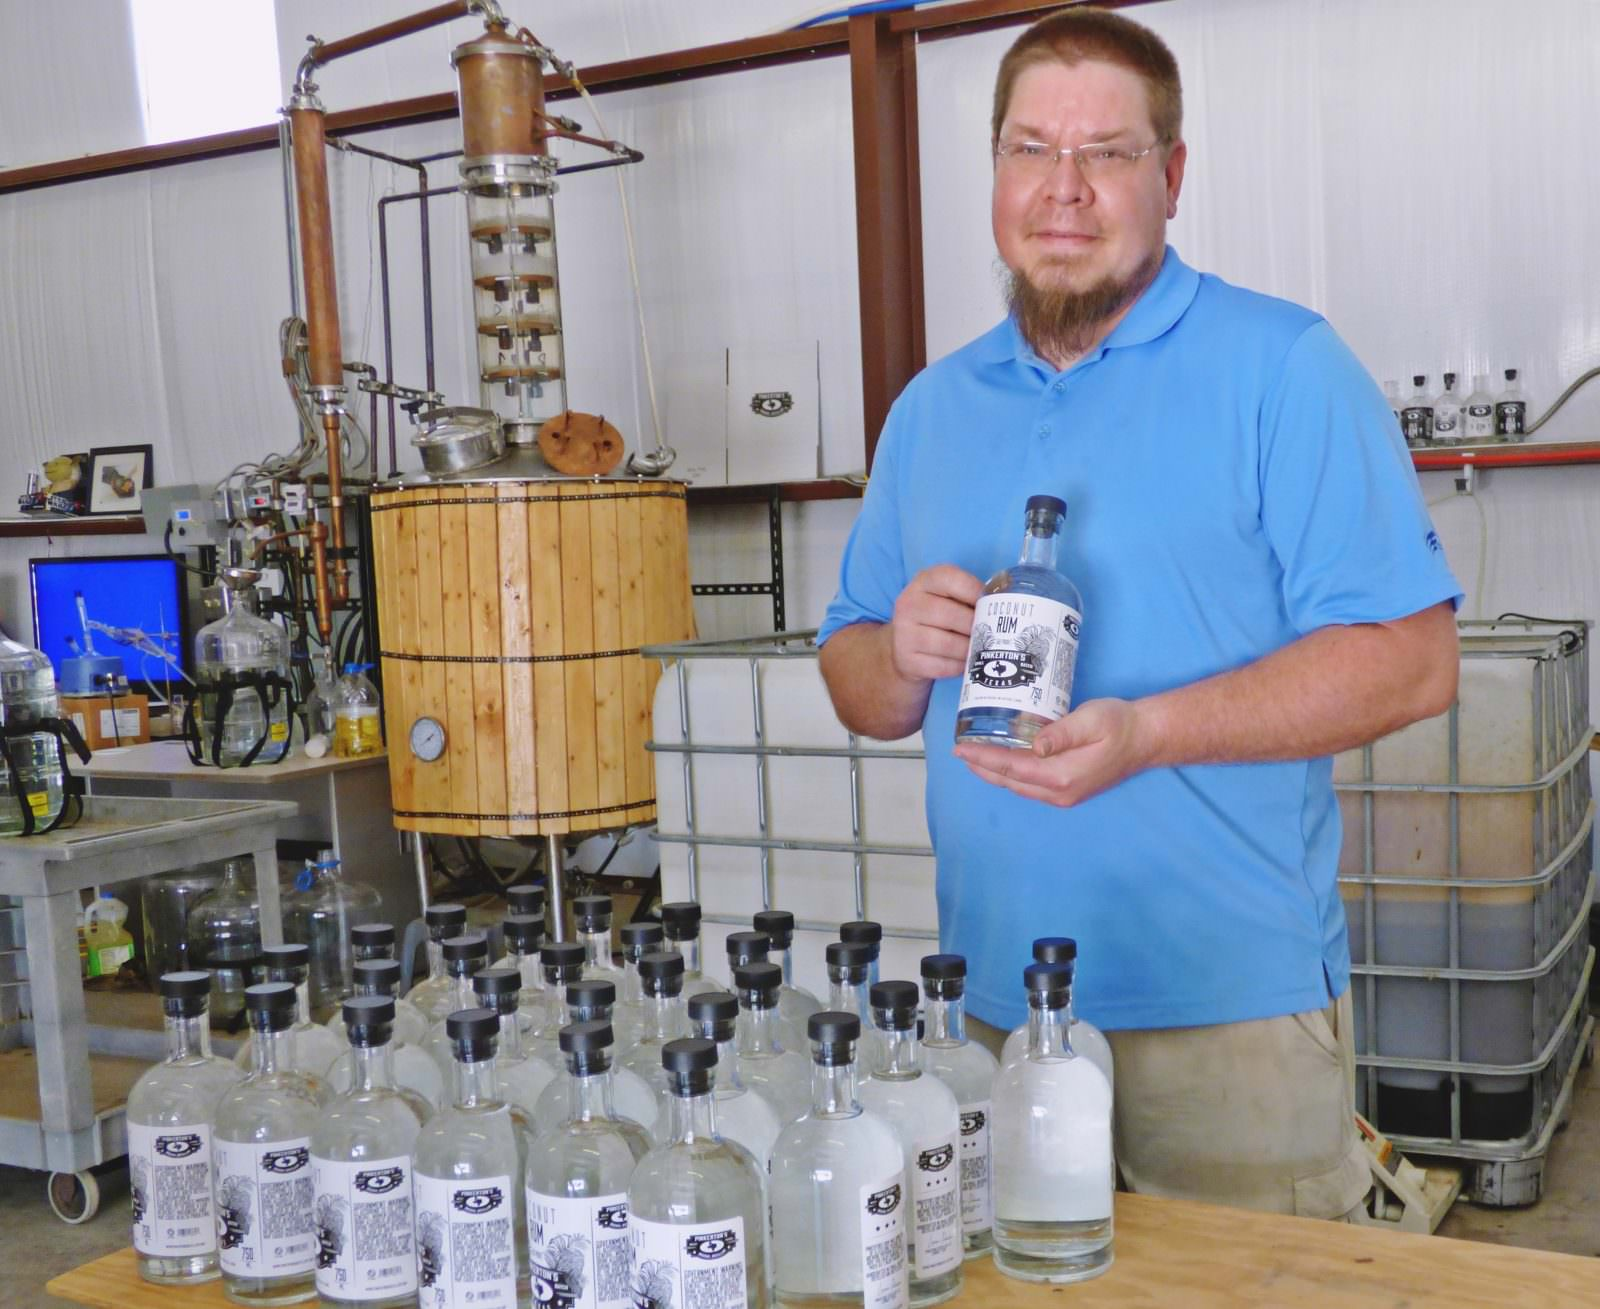 West Texas' First Distillery – Pinkerton's Distillery in Lubbock